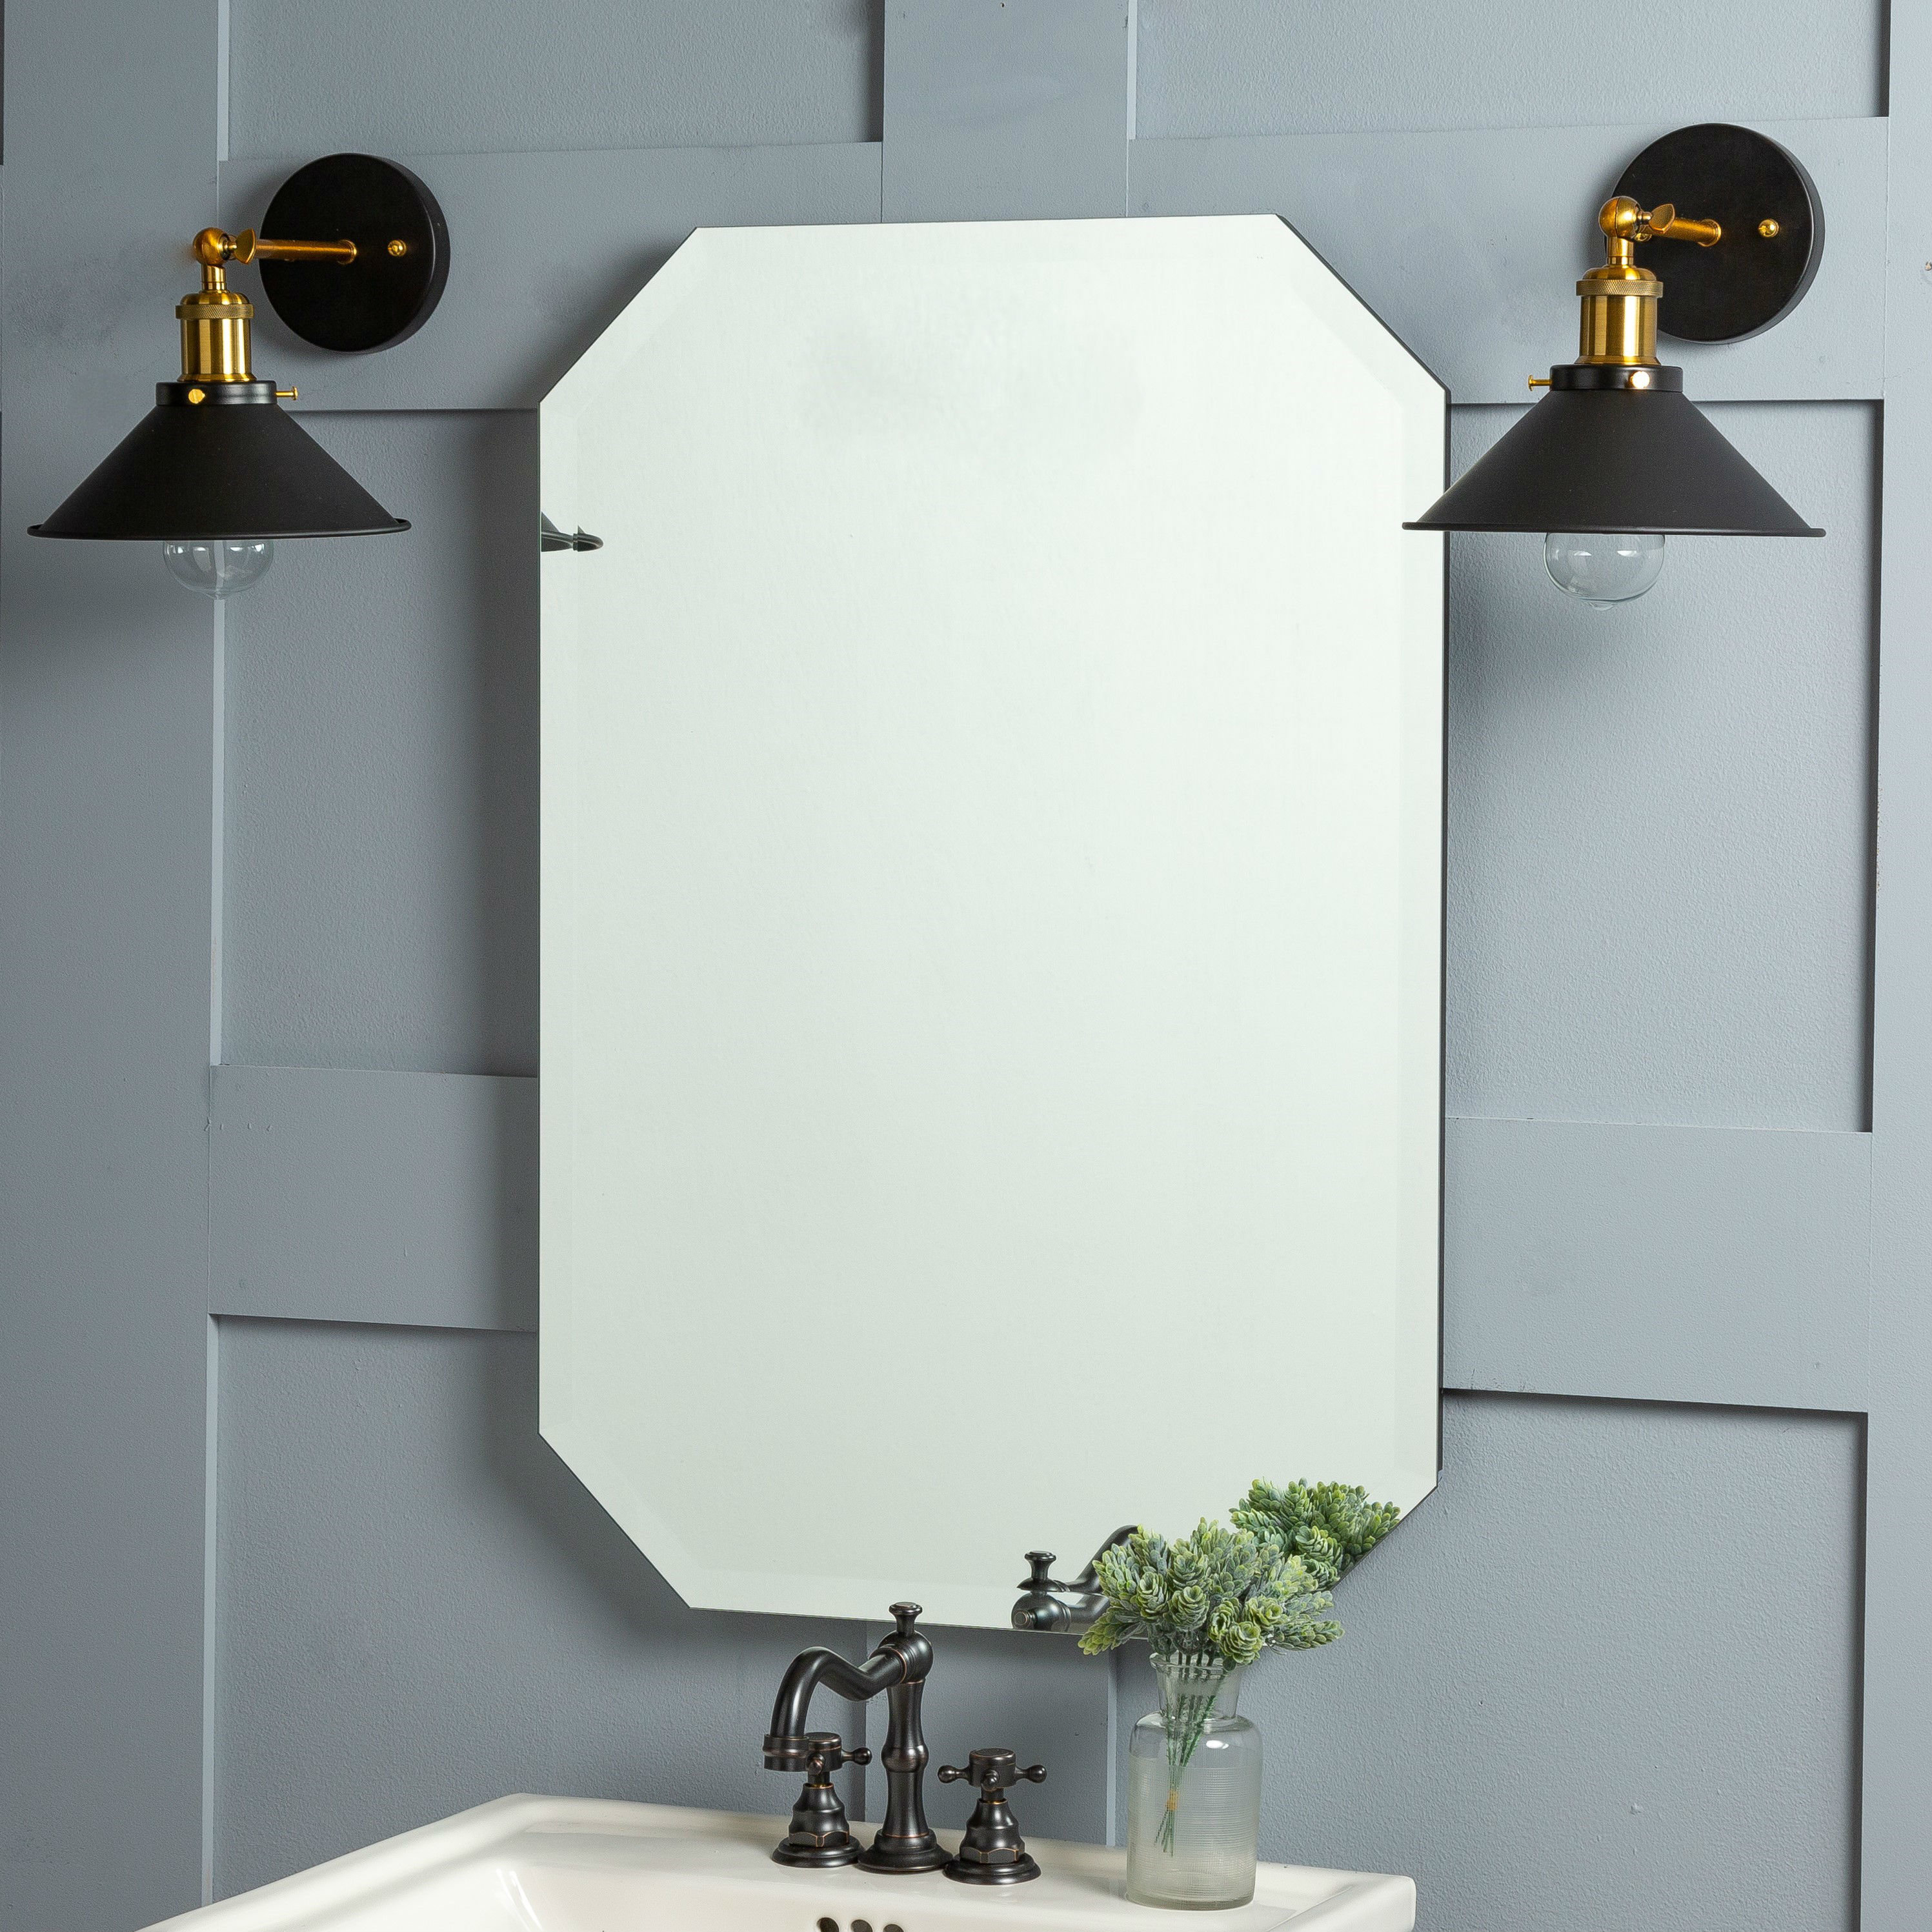 Farmhouse & Rustic Frameless Wall & Accent Mirrors | Birch Lane Pertaining To Thornbury Oval Bevel Frameless Wall Mirrors (Image 6 of 20)